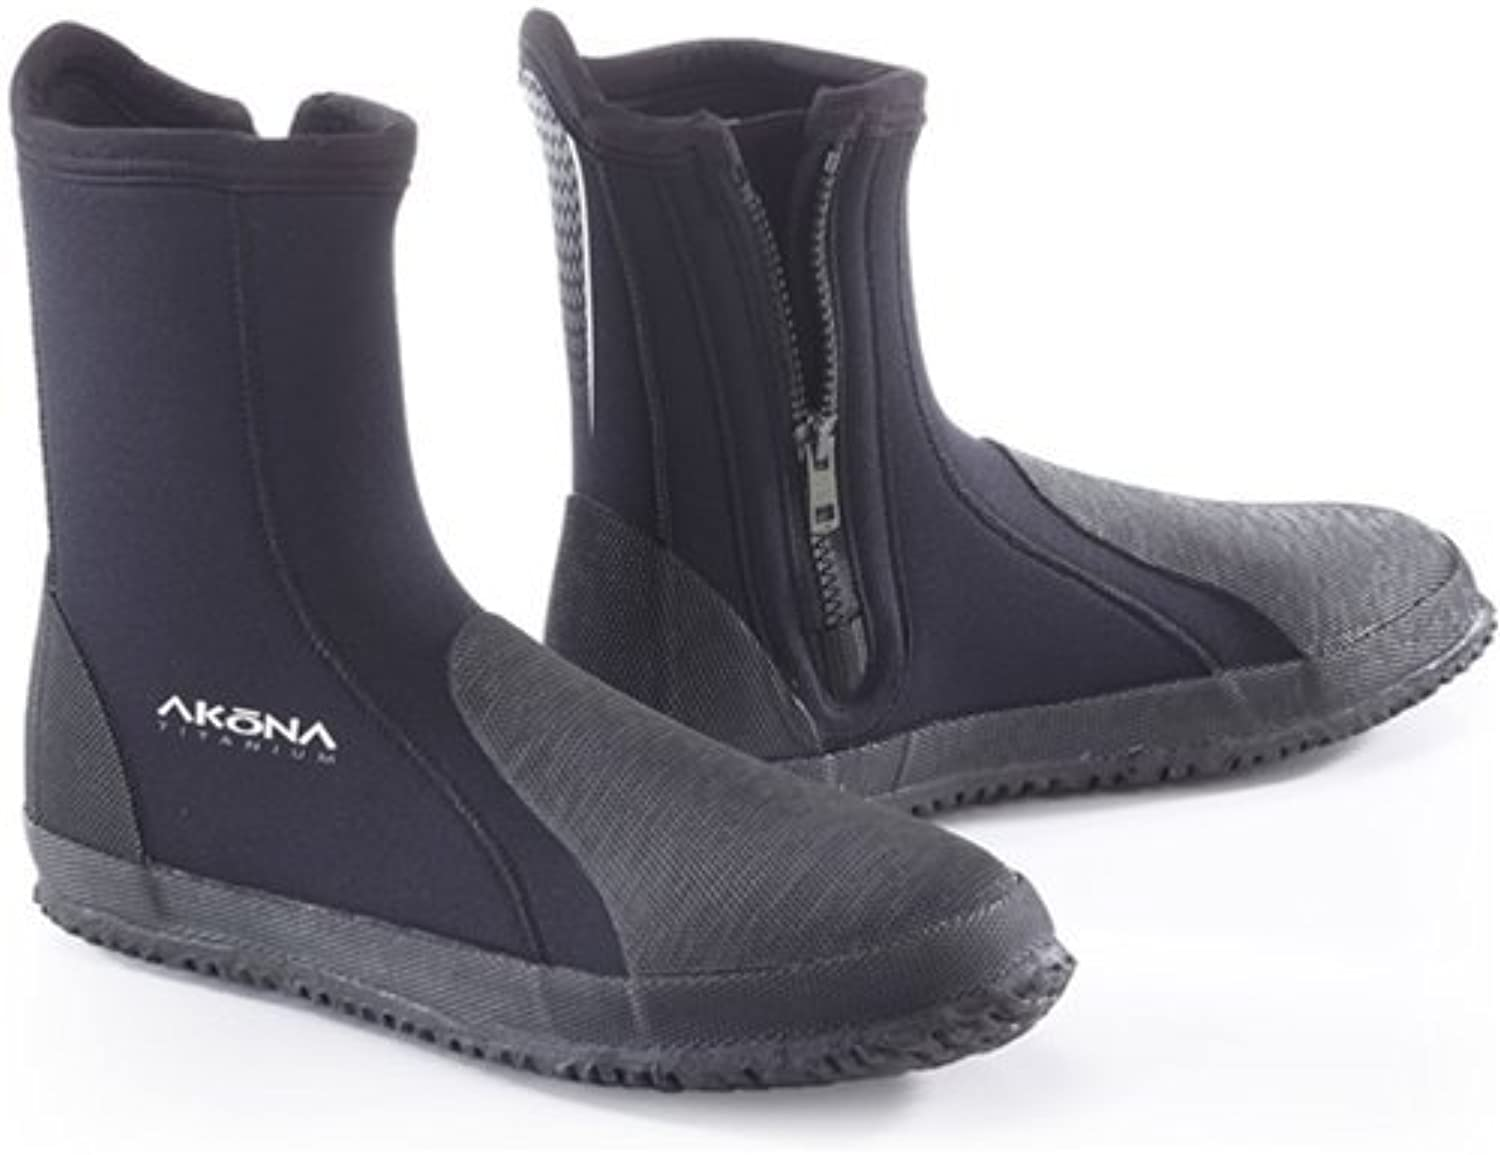 Akona Deluxe Boots, 6 3.5mm by AKONA